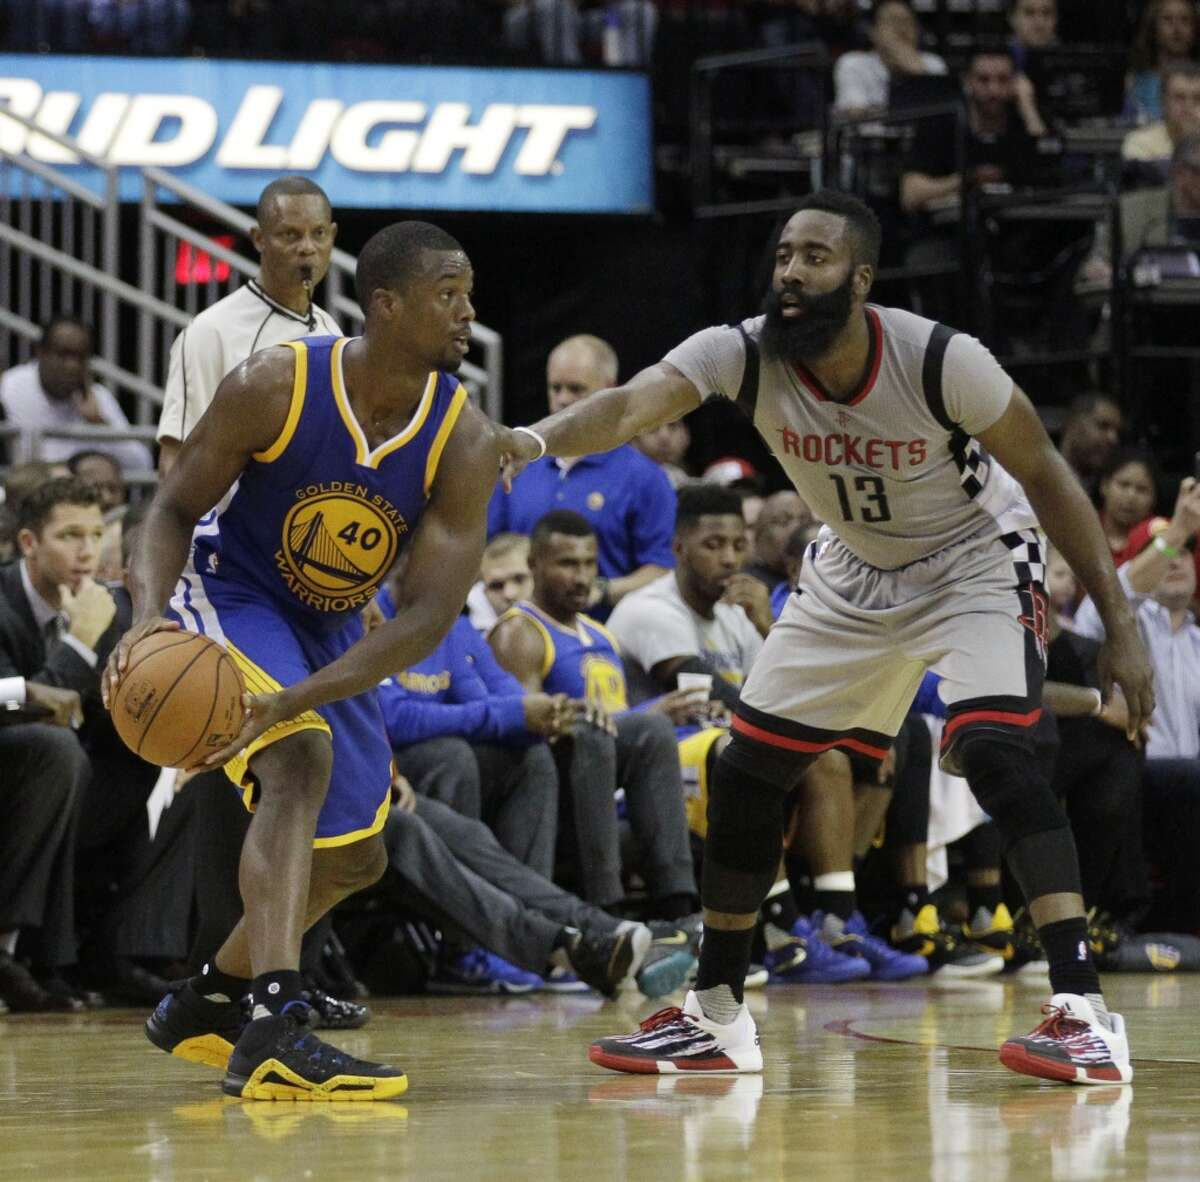 SMALL FORWARD The Rockets will likely use Trevor Ariza in a variety of matchups, ranging from having him go against Draymond Green in small lineups to Stephen Curry. Ariza made 46.2 percent of his shots in wins, 37 percent in losses. Harrison Barnes averaged 11.7 points, one fewer than Ariza, but on 46.6 percent shooting, 38.3 percent 3-point shooting. He averaged 15.5 points in just 29 minutes against the Rockets. Edge:Warriors